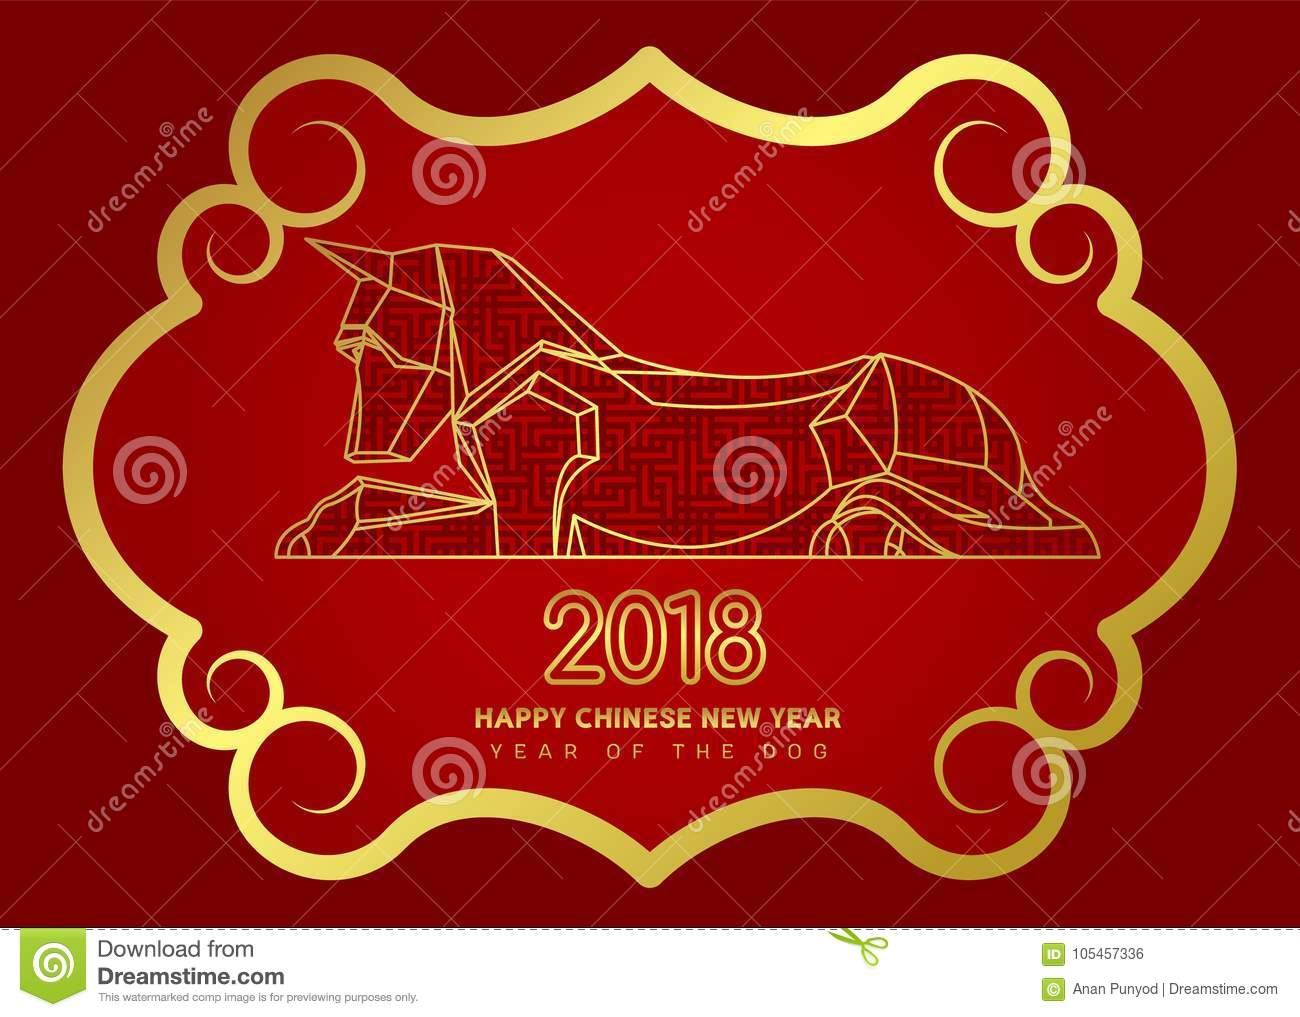 happy chinese new year 2018 card with gold border line dog zodiac in gold chinese curve